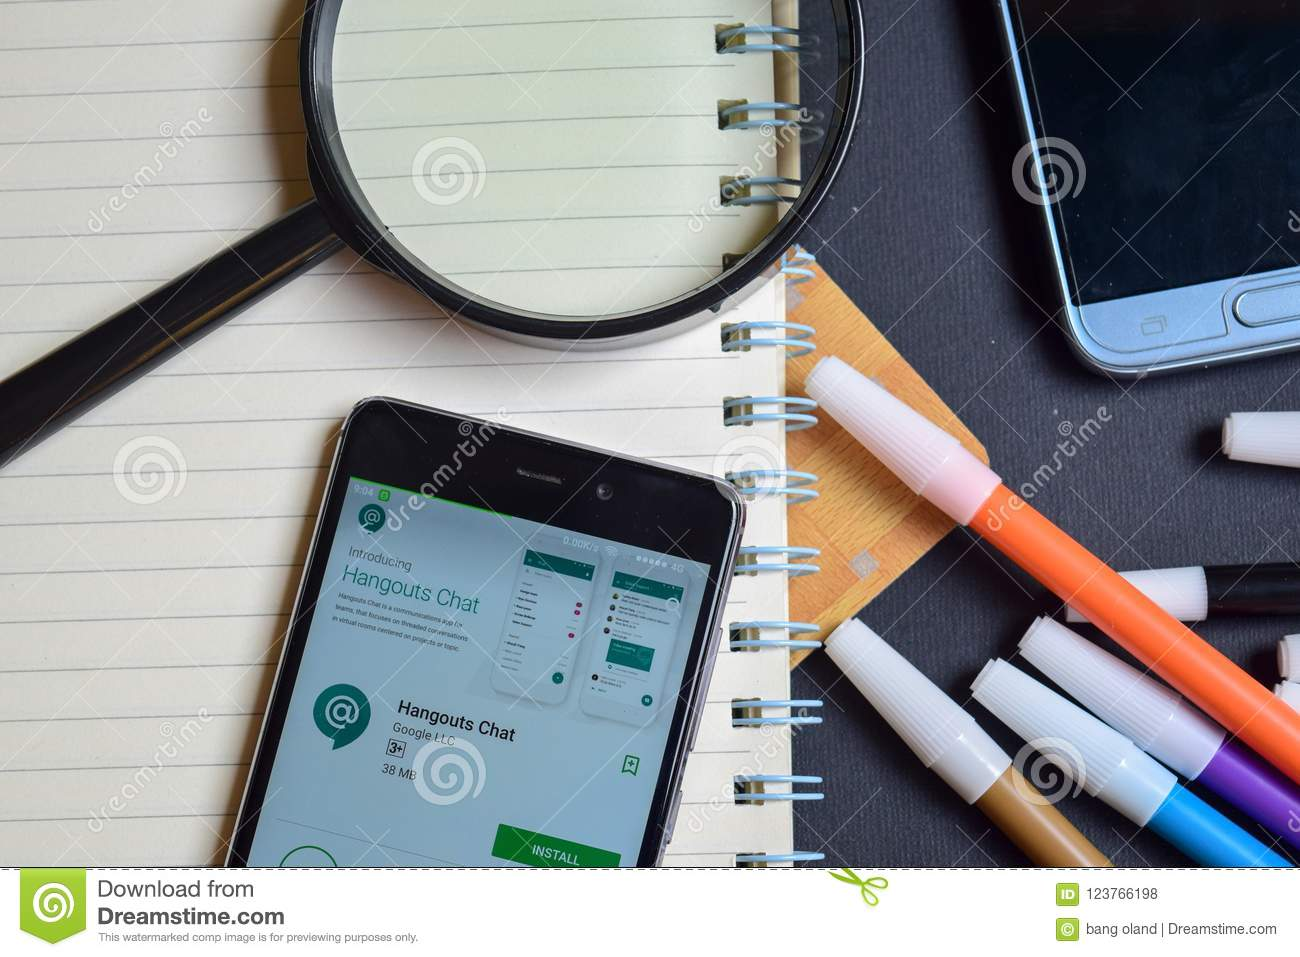 Hangouts Chat App On Smartphone Screen  Editorial Stock Photo